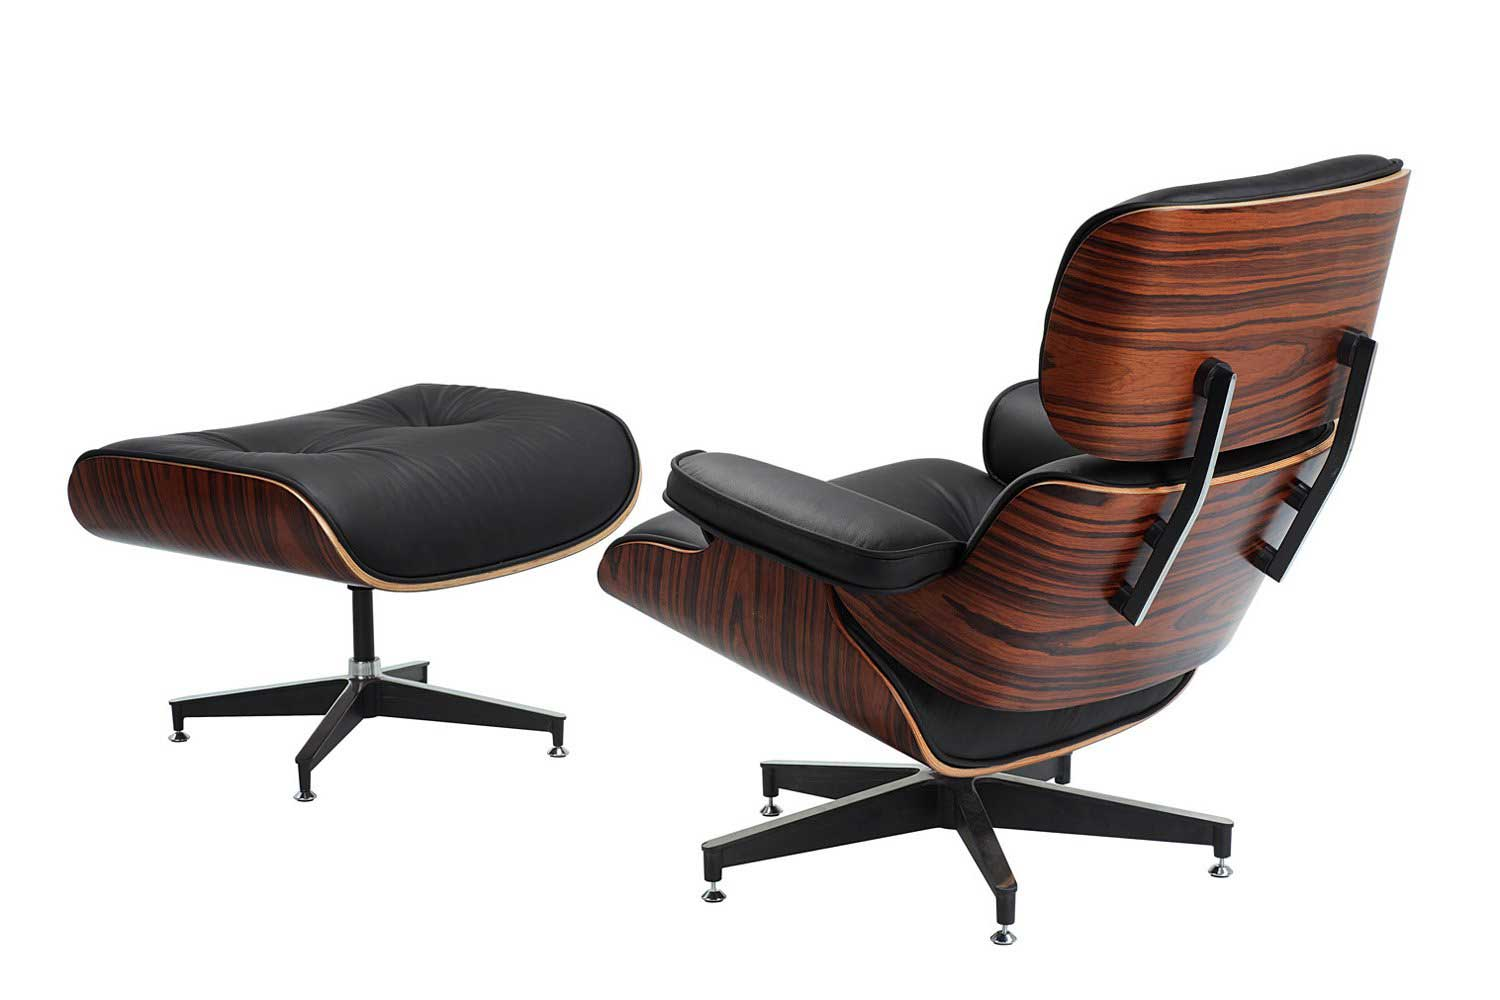 Office star wood bankers chairs office furniture for Contemporary office chairs modern